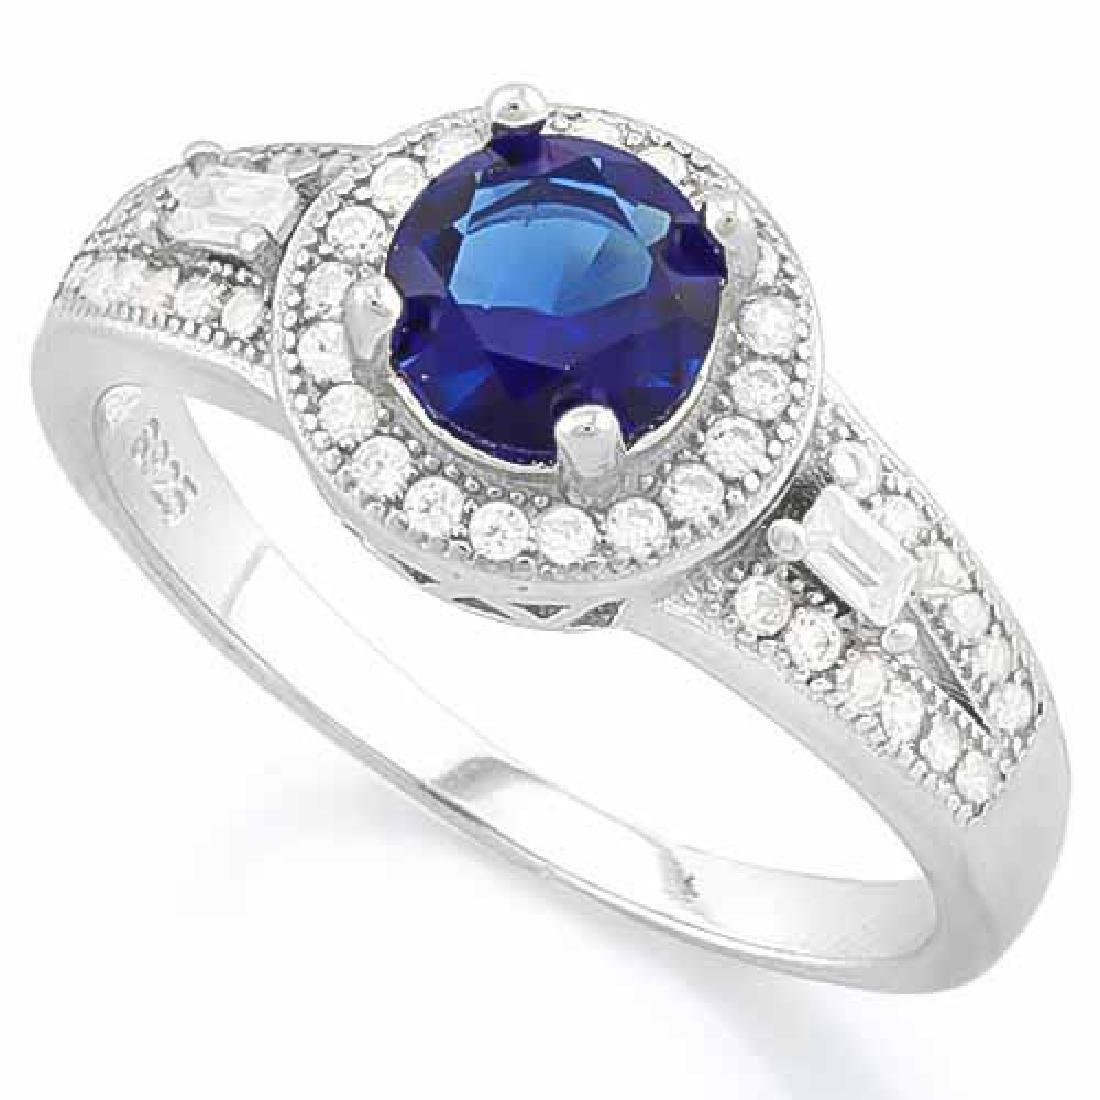 1 CARAT CREATED BLUE SAPPHIRE 925 STERLING SILVER HALO